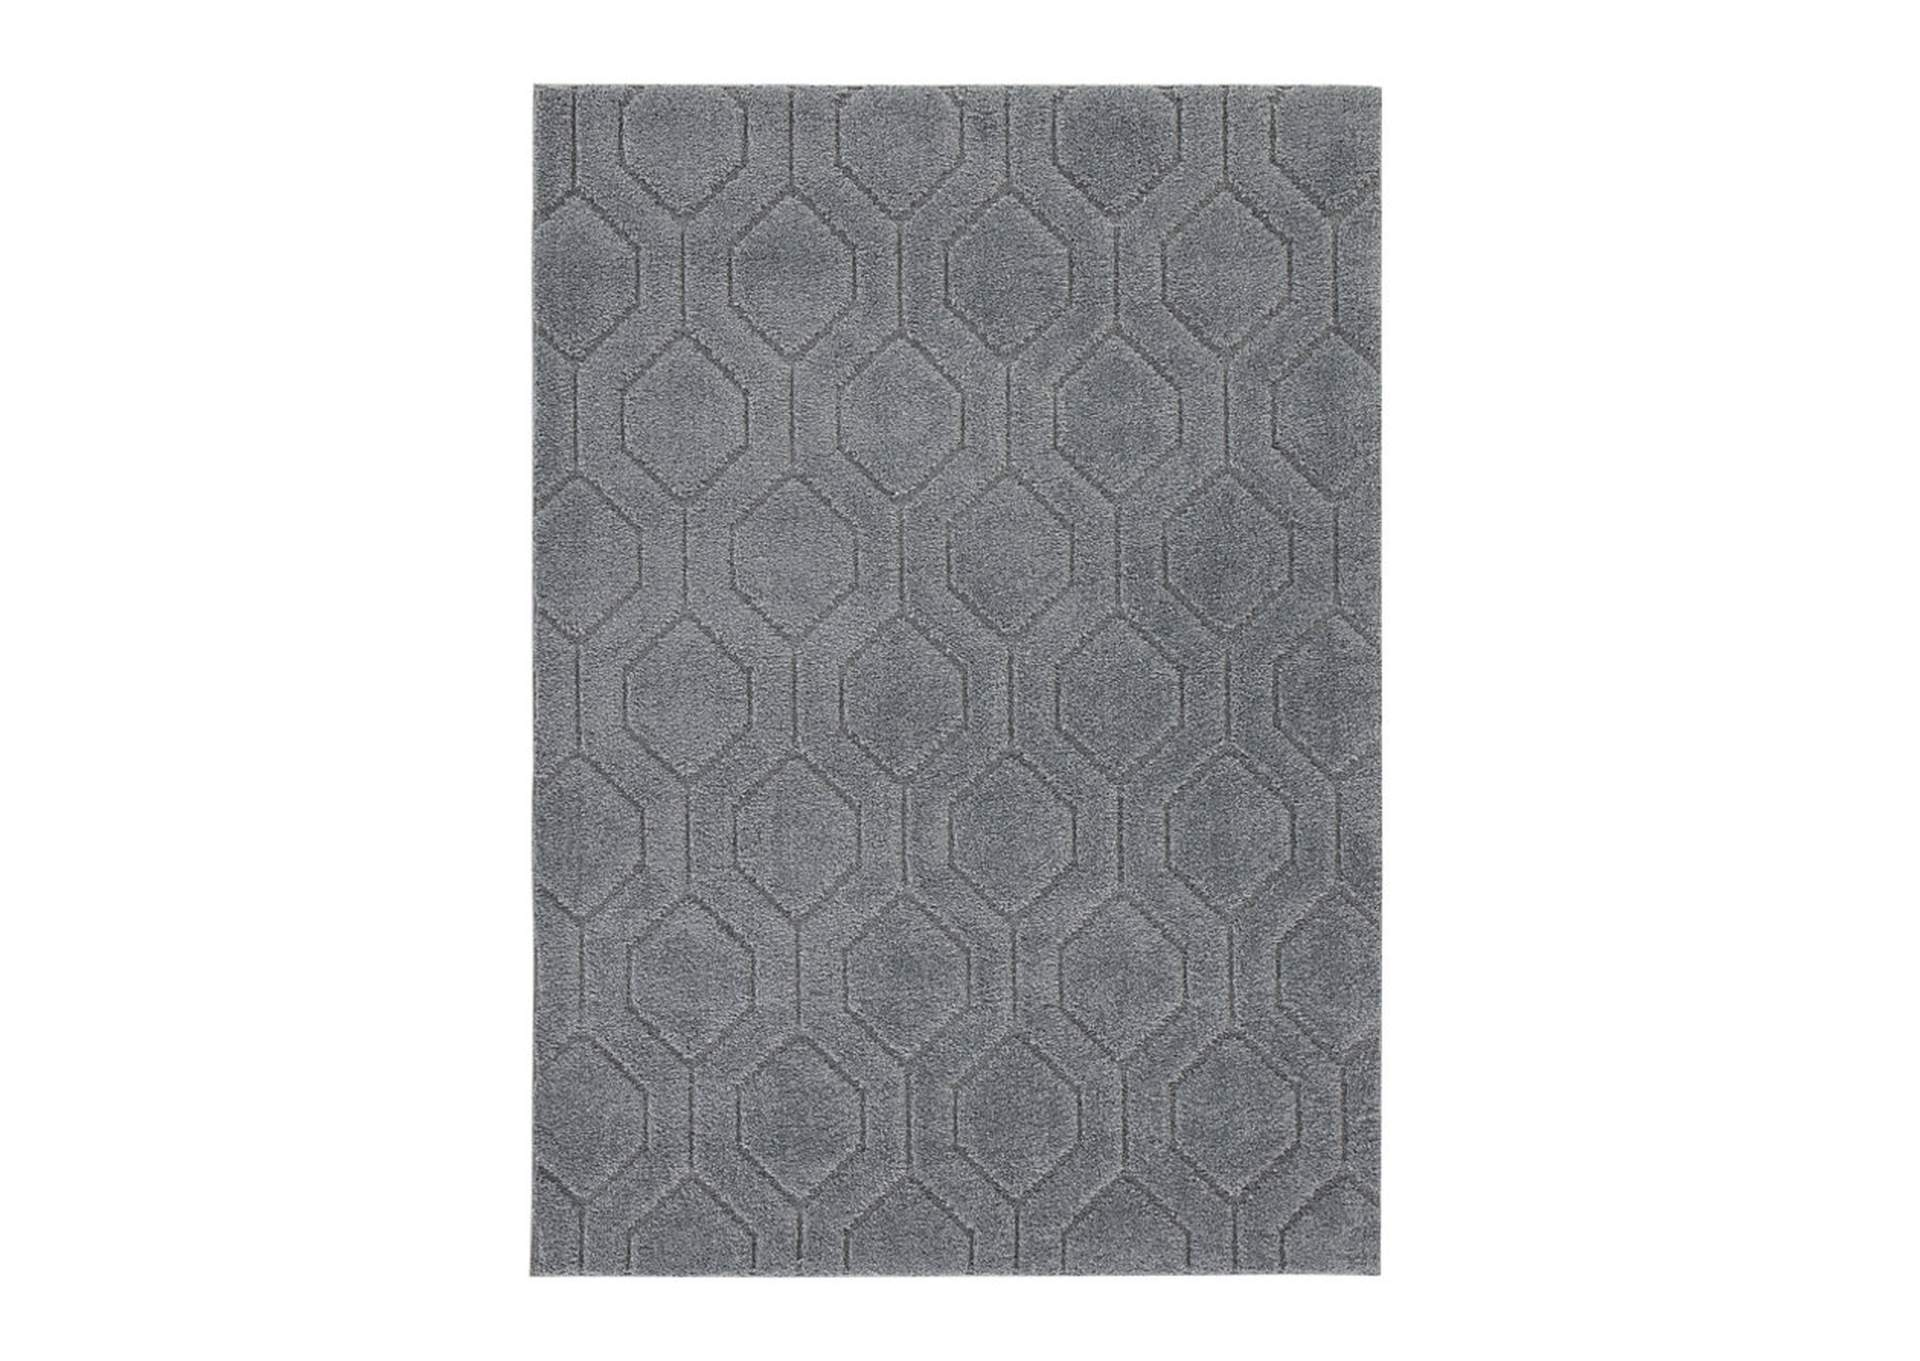 Matthew Titanium Large Rug,Direct To Consumer Express